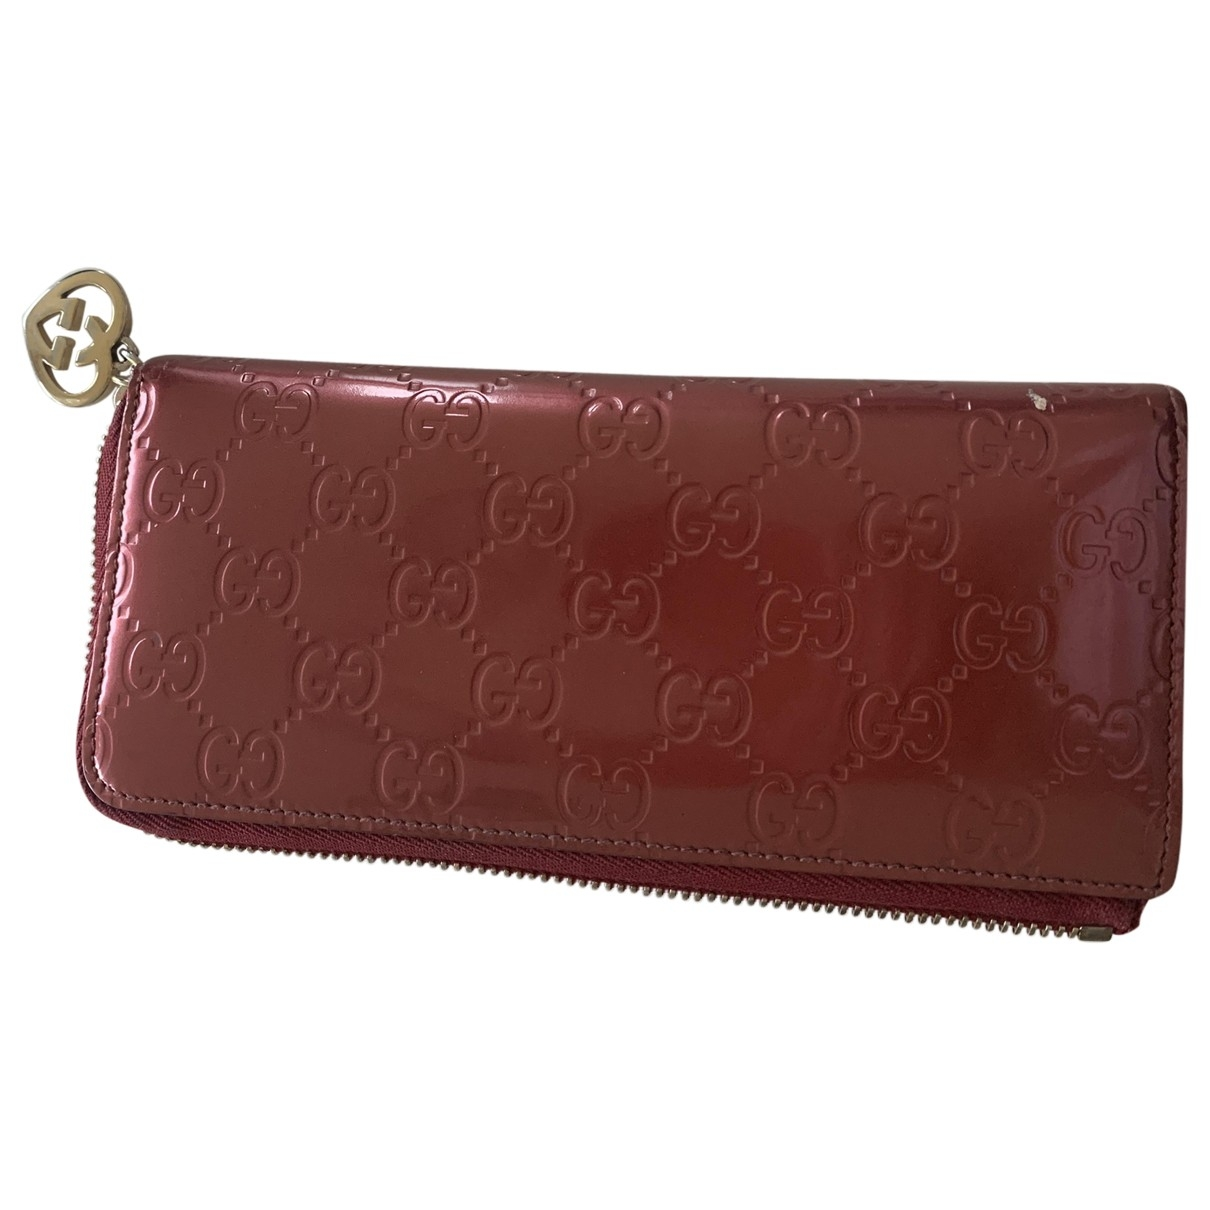 Gucci \N Pink Patent leather wallet for Women \N